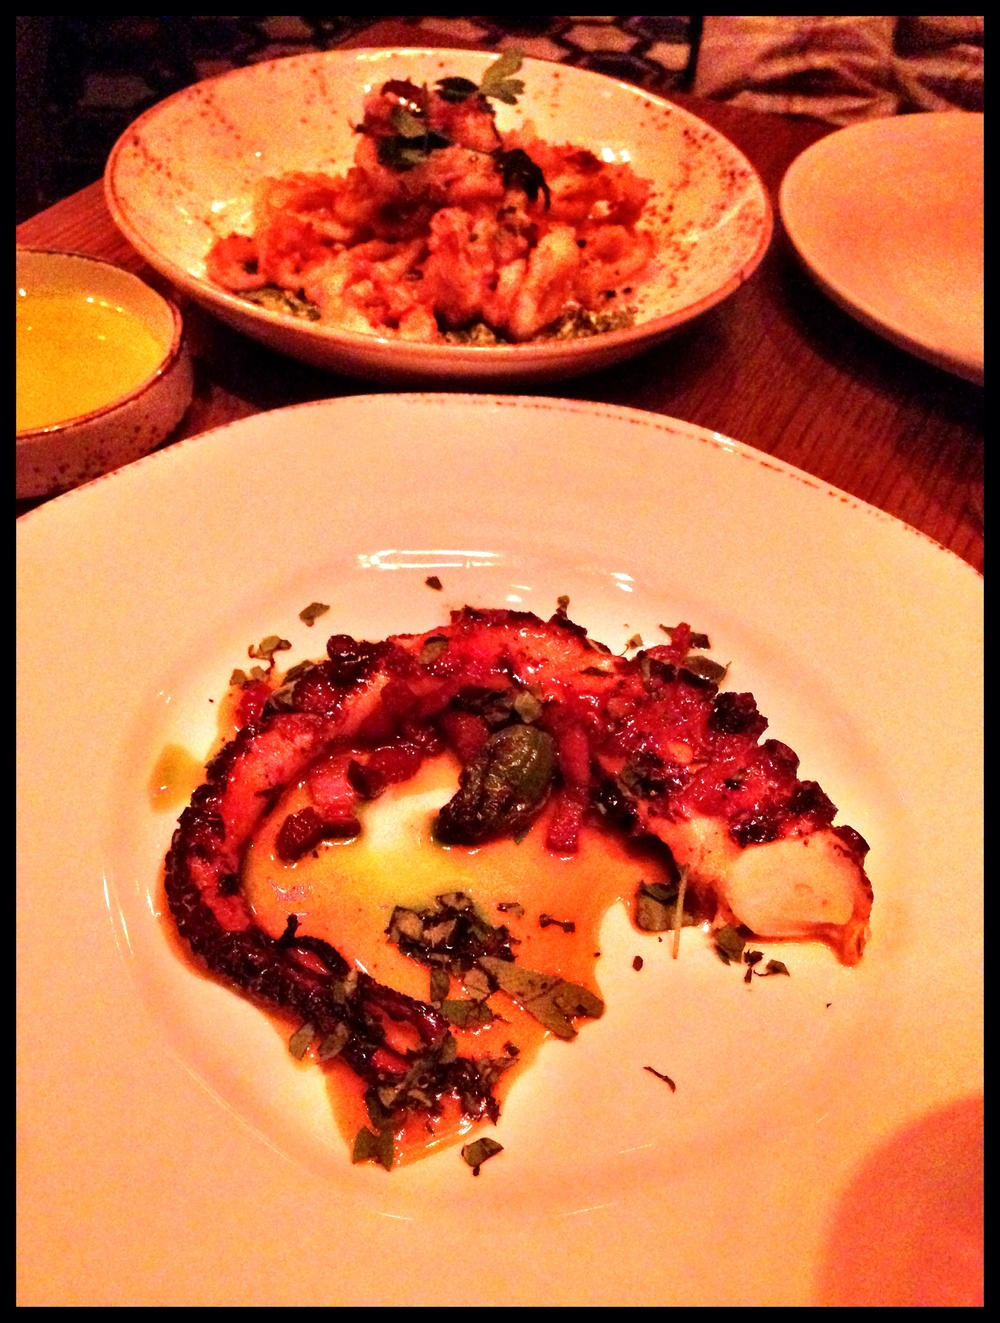 Roasted octopus - tangerine, bacon, oregano / Crispy squid in the back